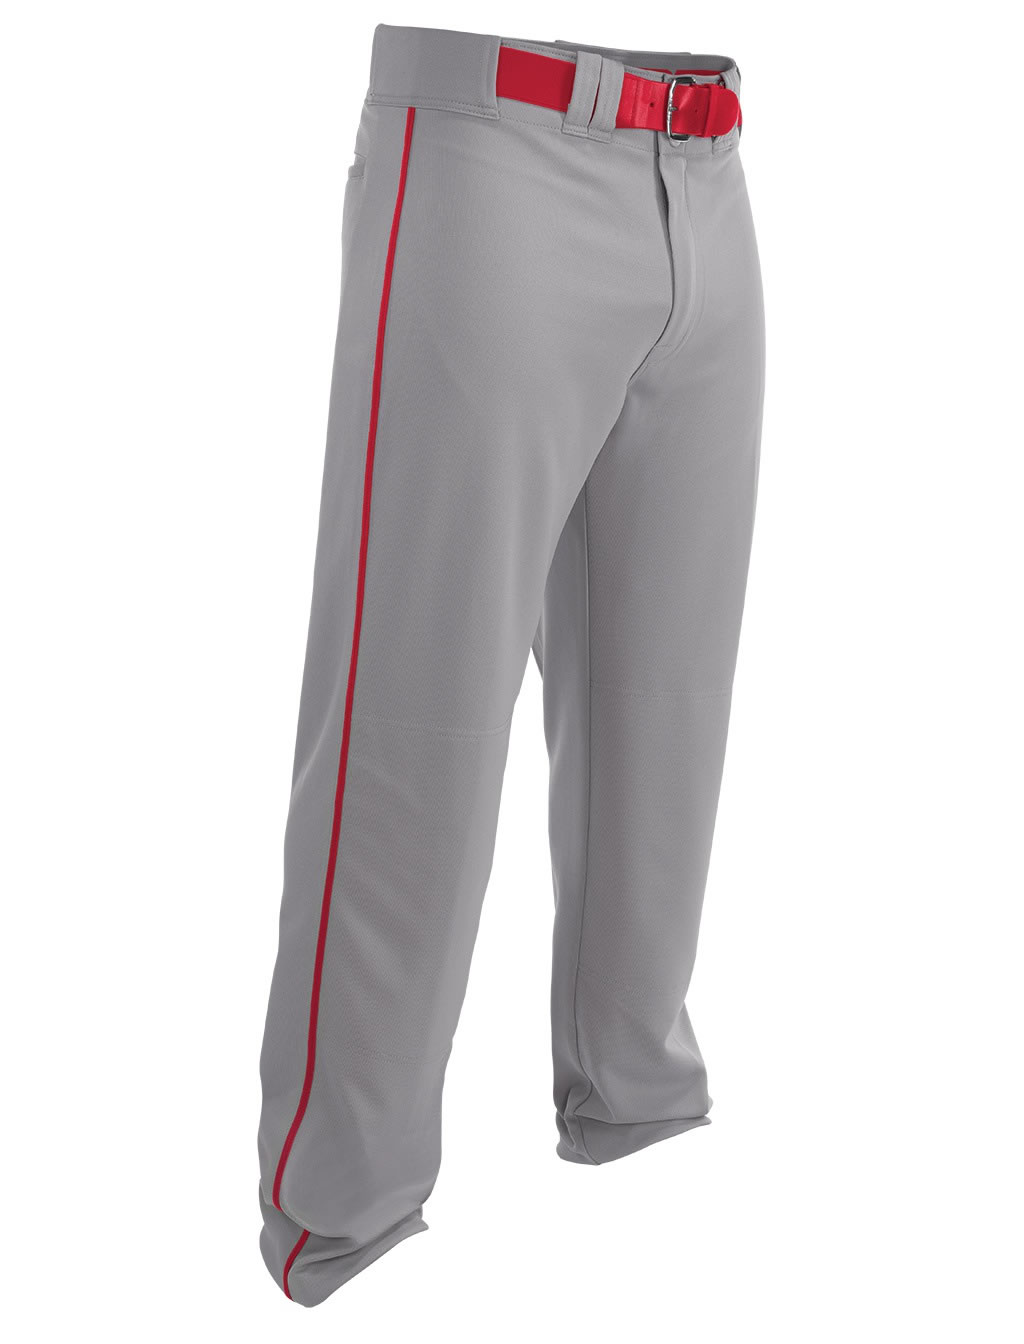 Red Rival 2 Youth Baseball Pant by Easton